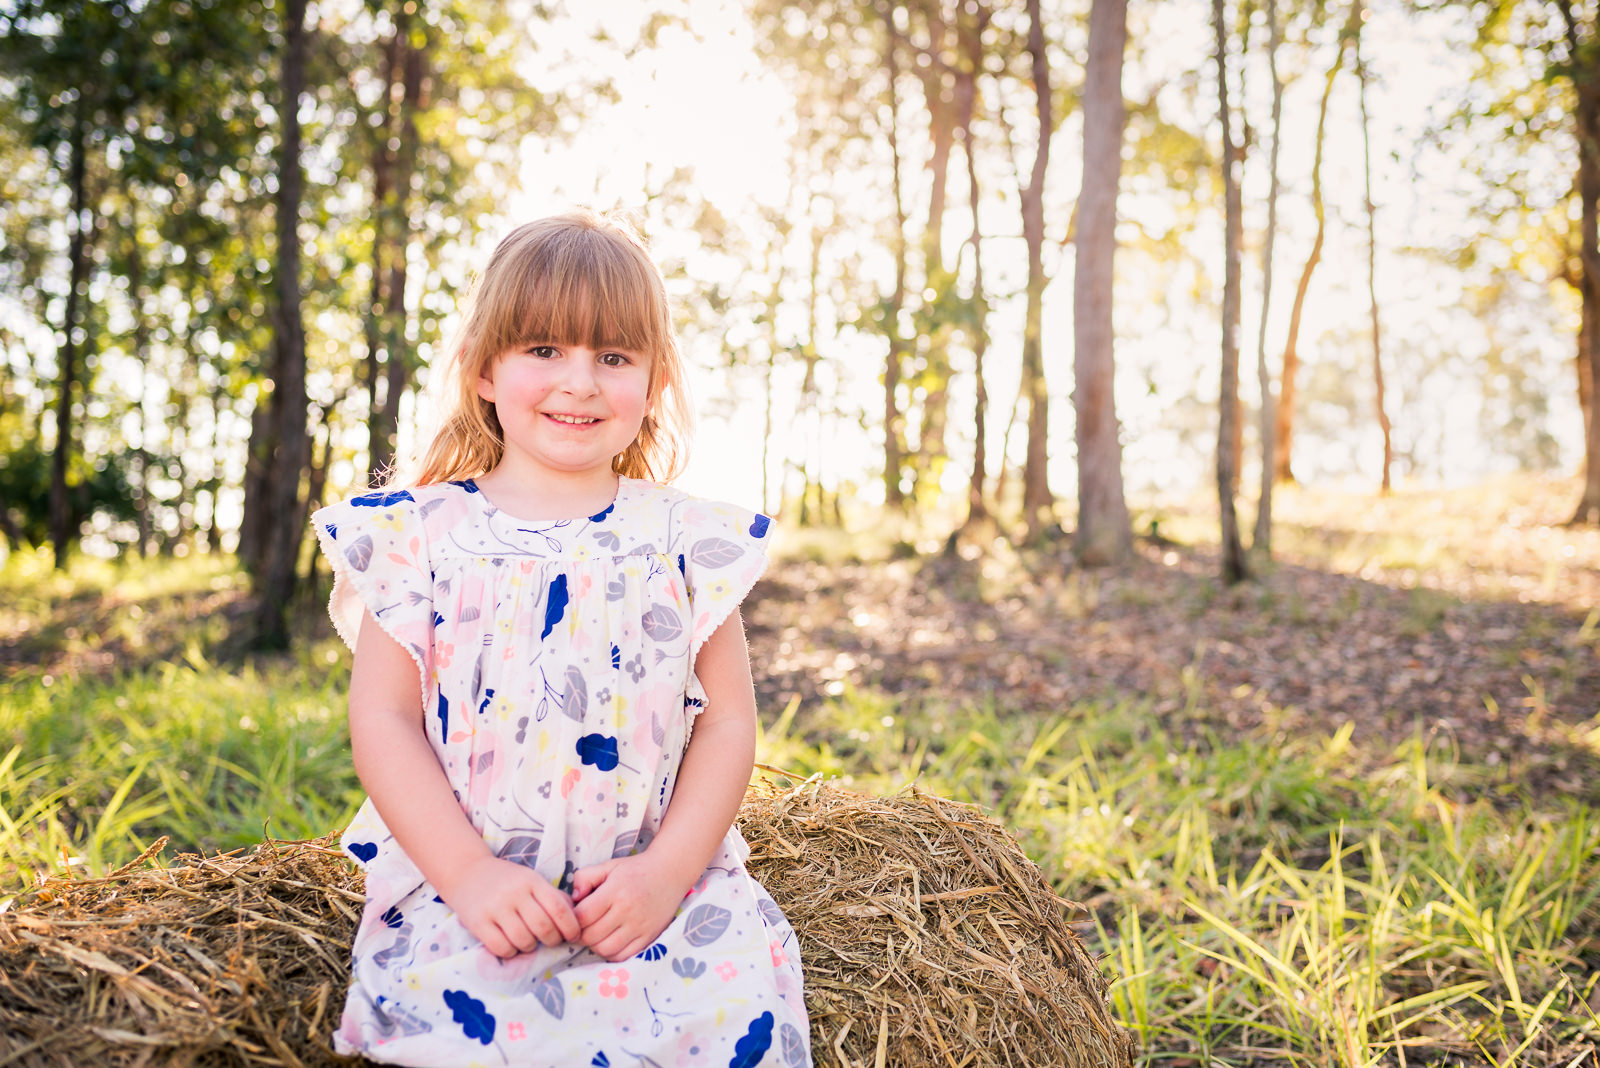 Portrait of little girl sitting on hay bale in a rural setting in Elimbah